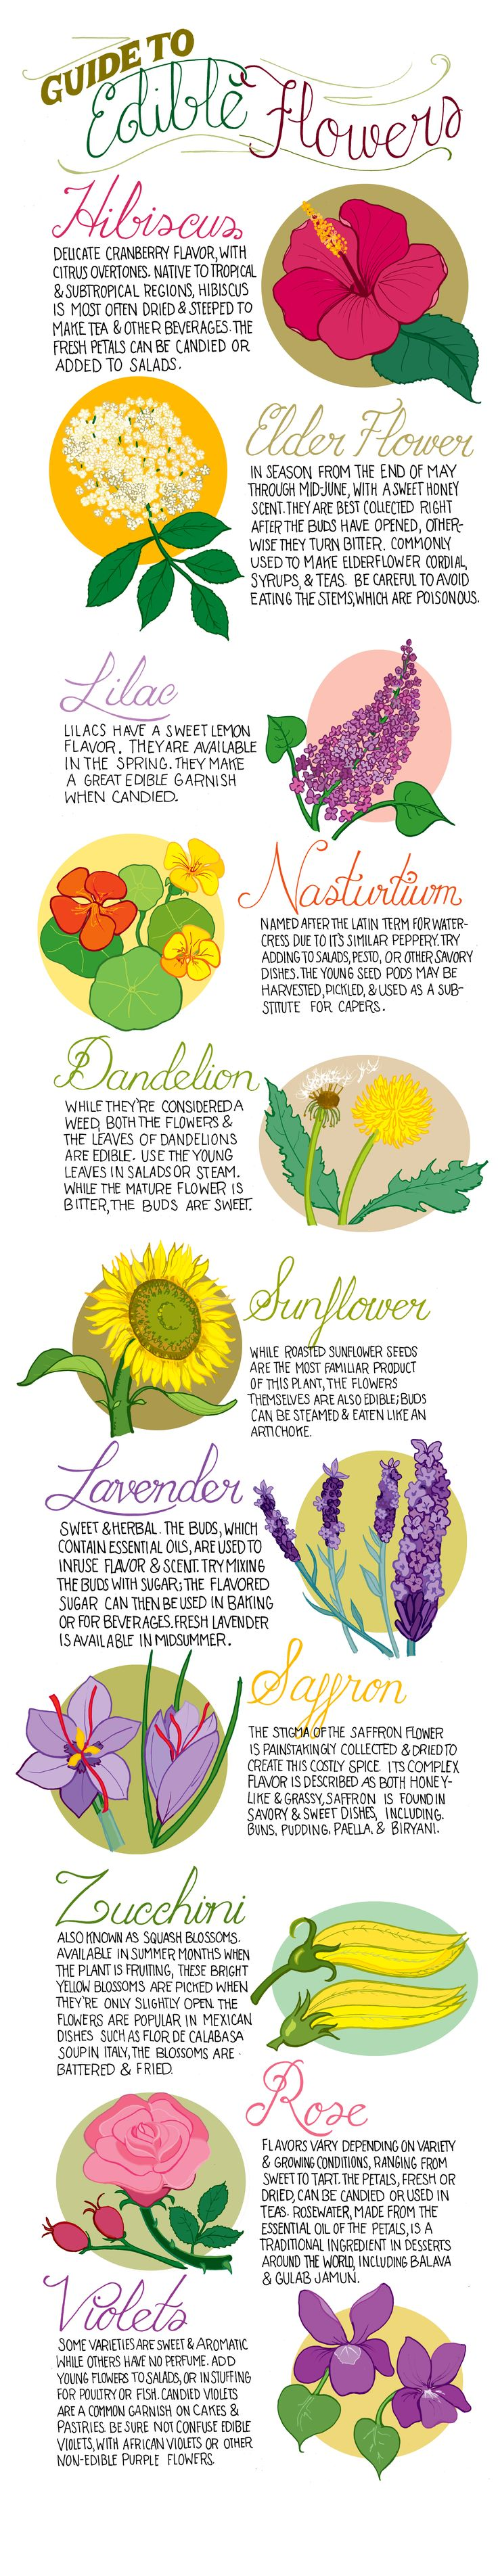 The spice doc edible and medicinal flowers - Edible Beauties